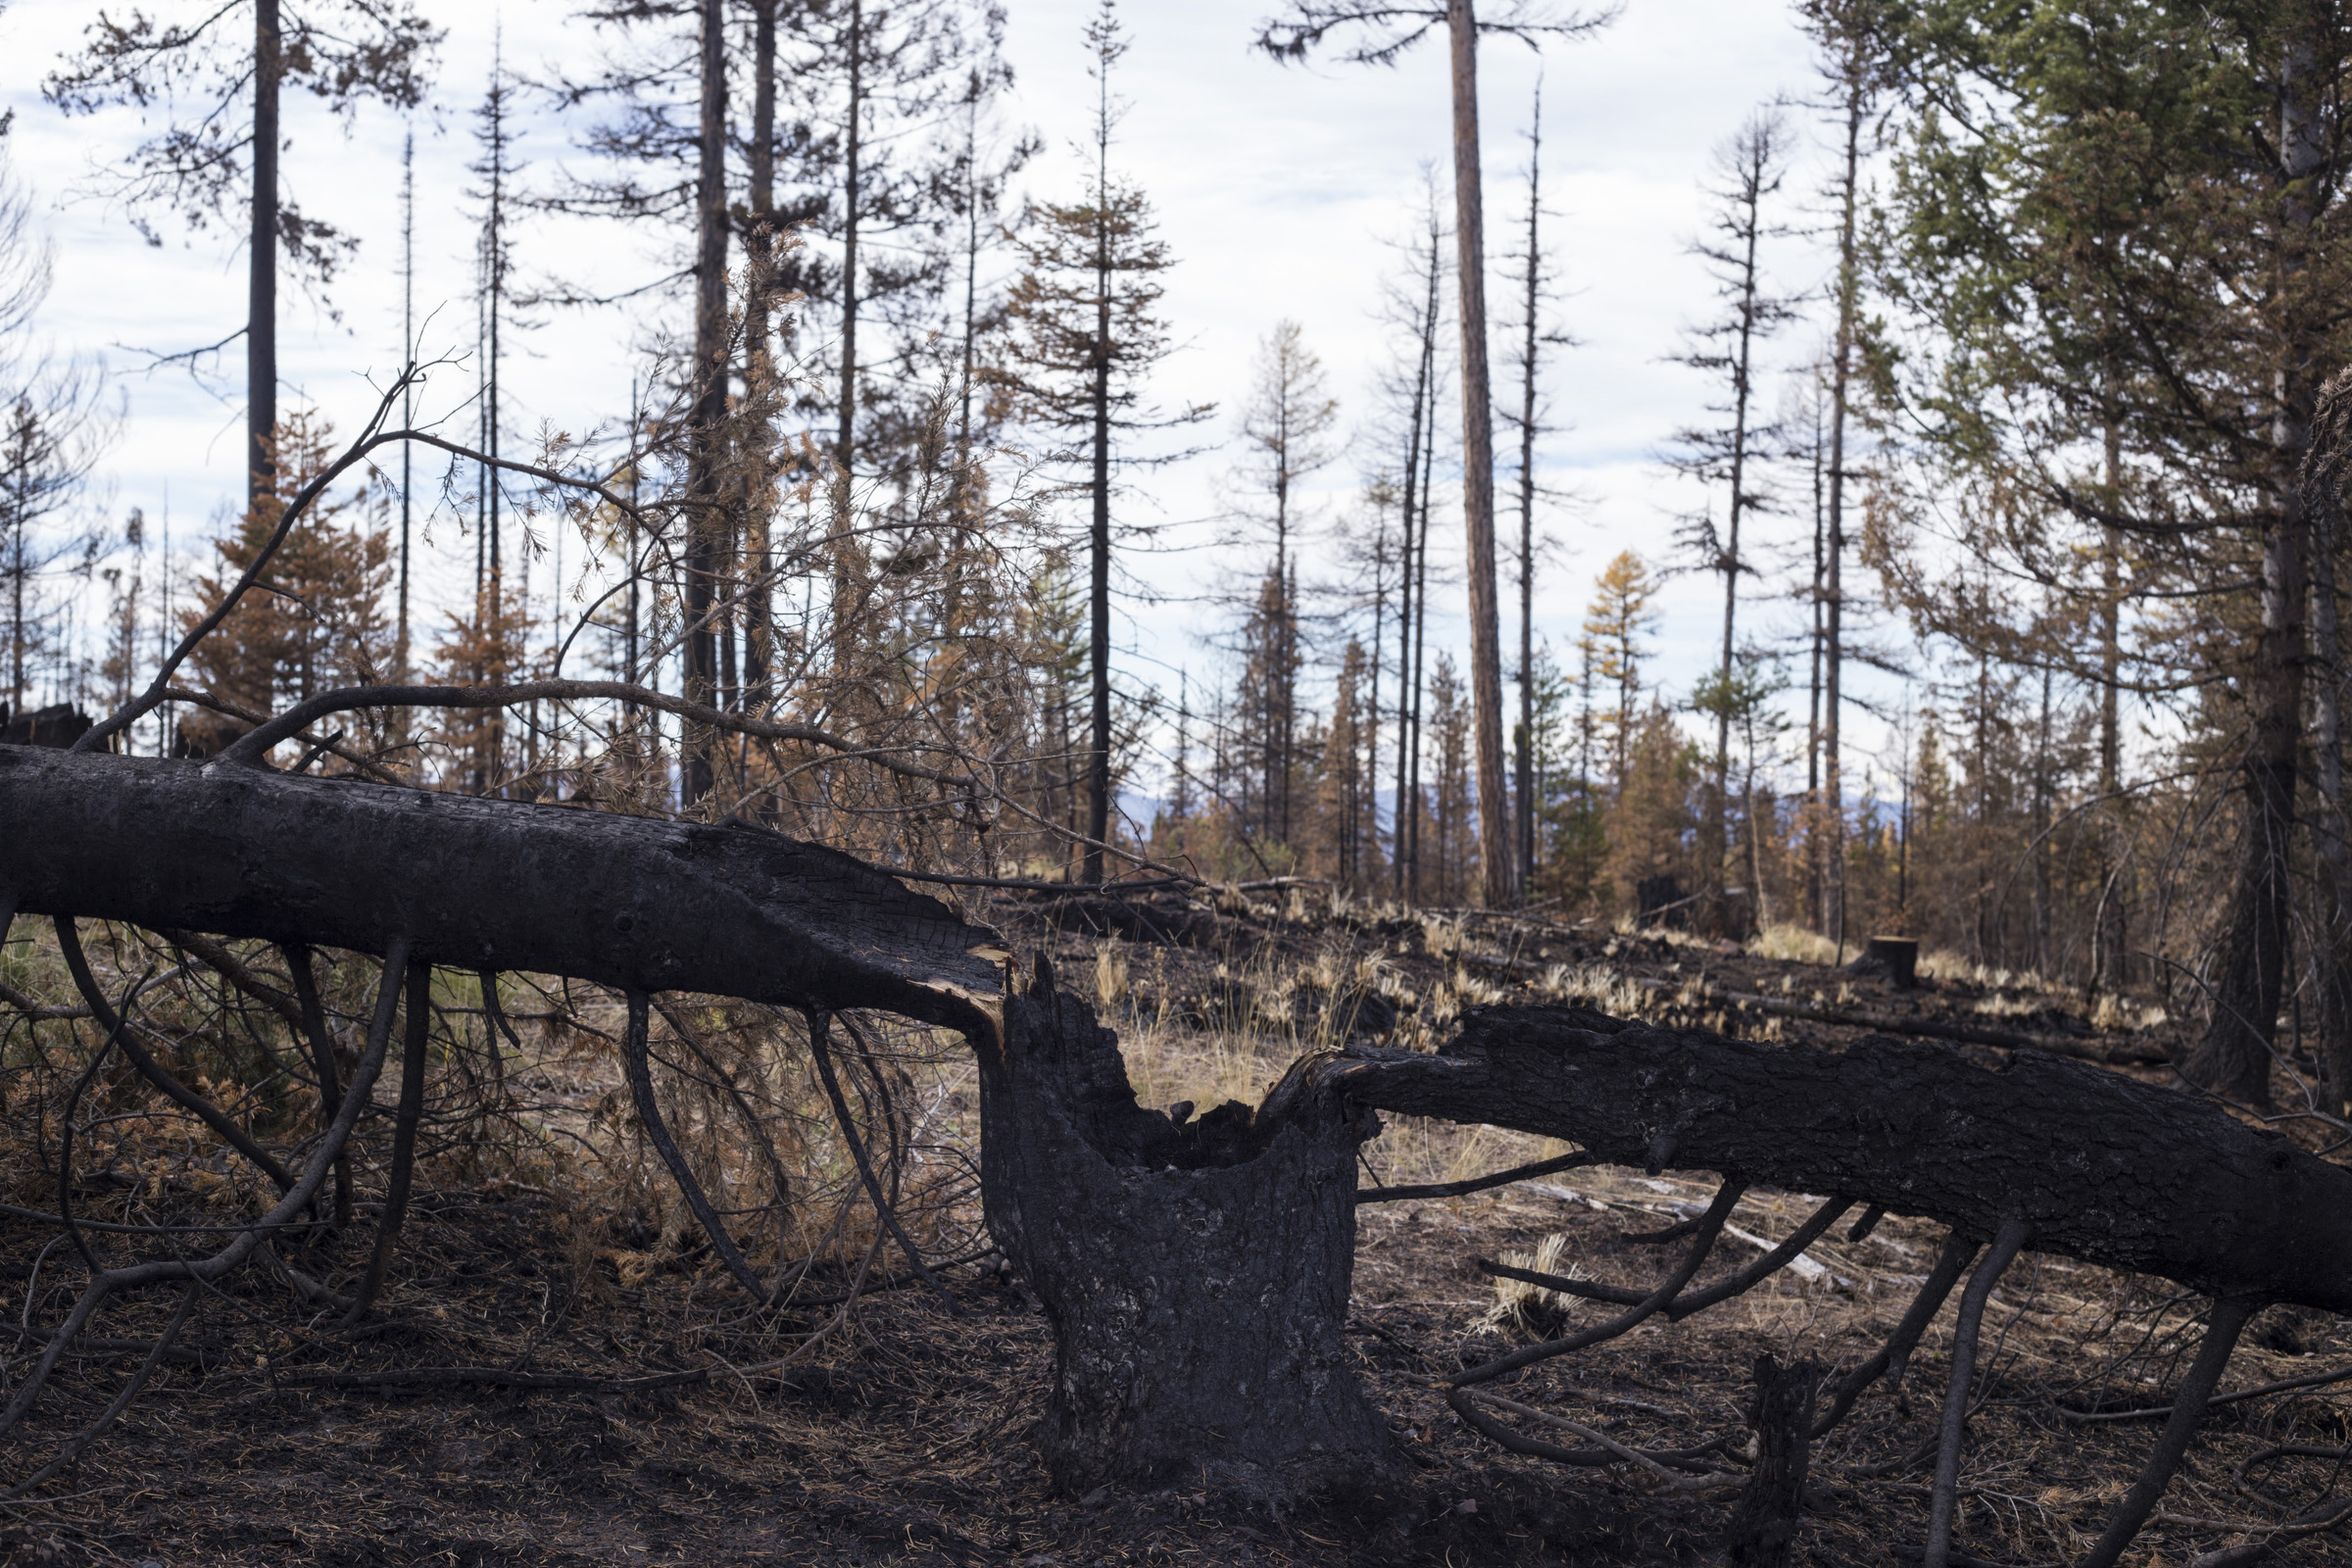 A tree is seen burned and split in half following the Rice Ridge Fire in a forest outside of Seeley Lake, Montana, on Thursday, October 19, 2017. (Photo by Brittany Greeson)